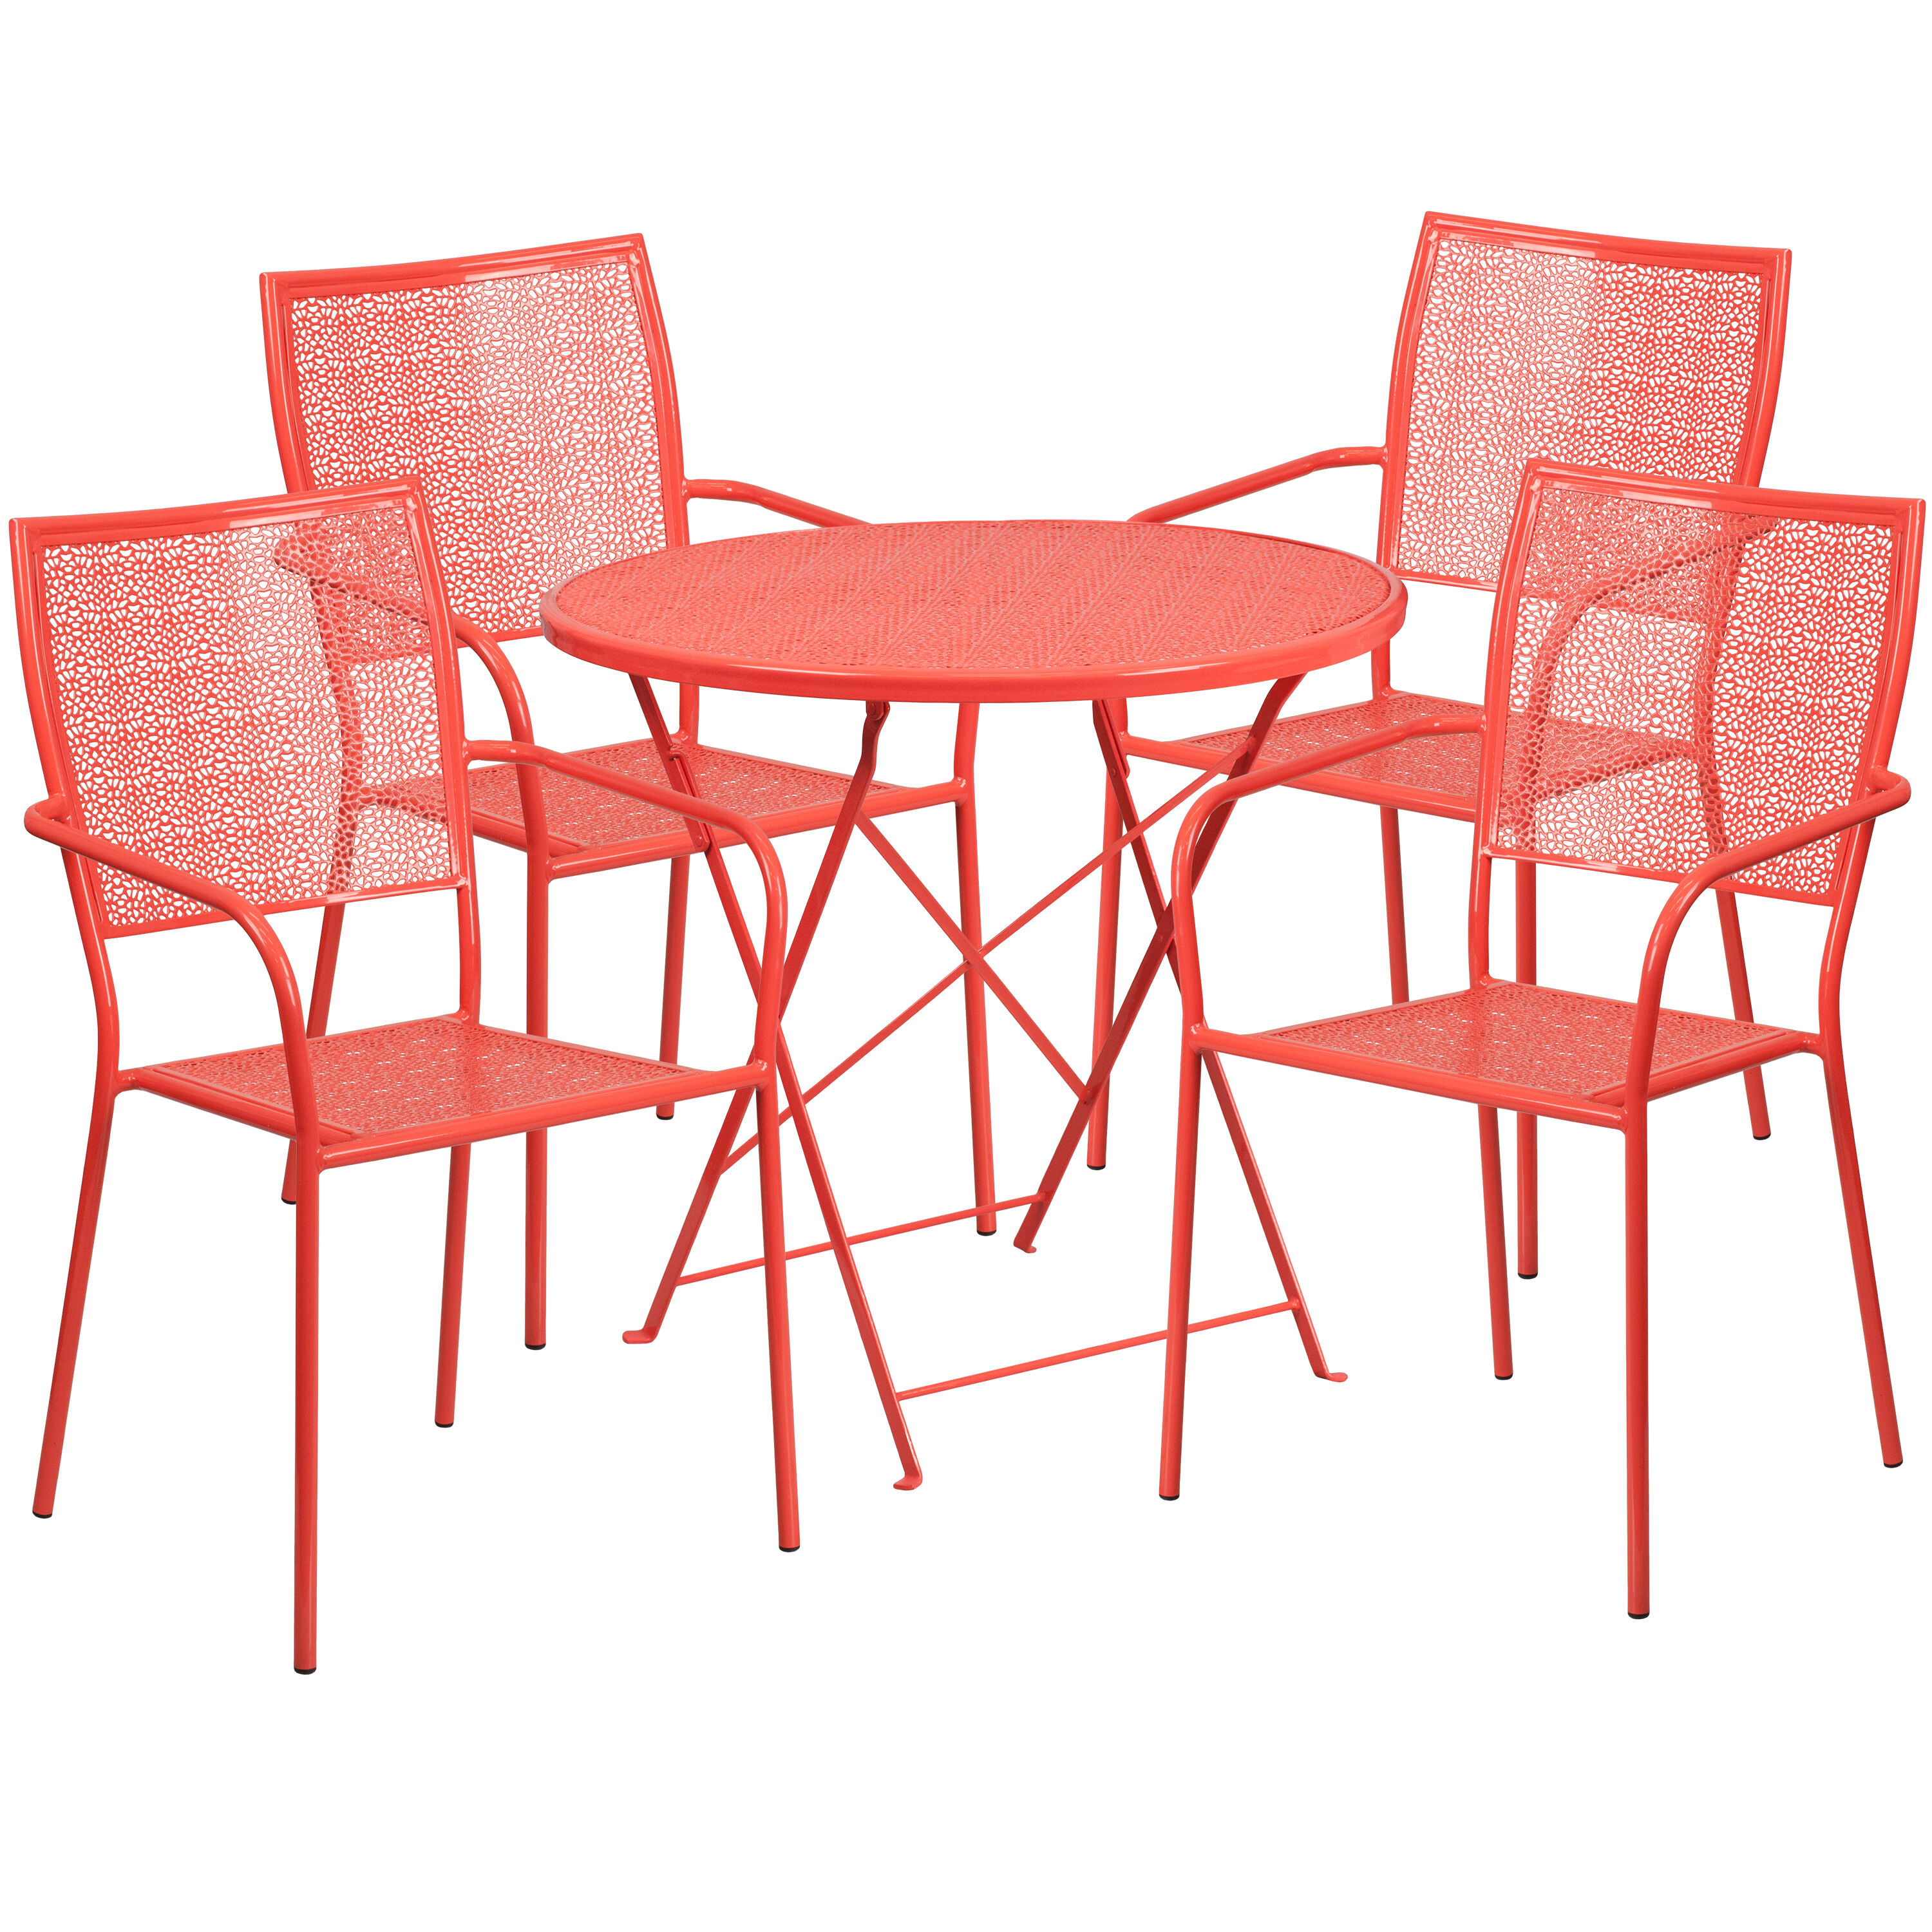 Red Patio Chairs 30 Round Coral Indoor Outdoor Steel Folding Patio Table Set With 4 Square Back Chairs